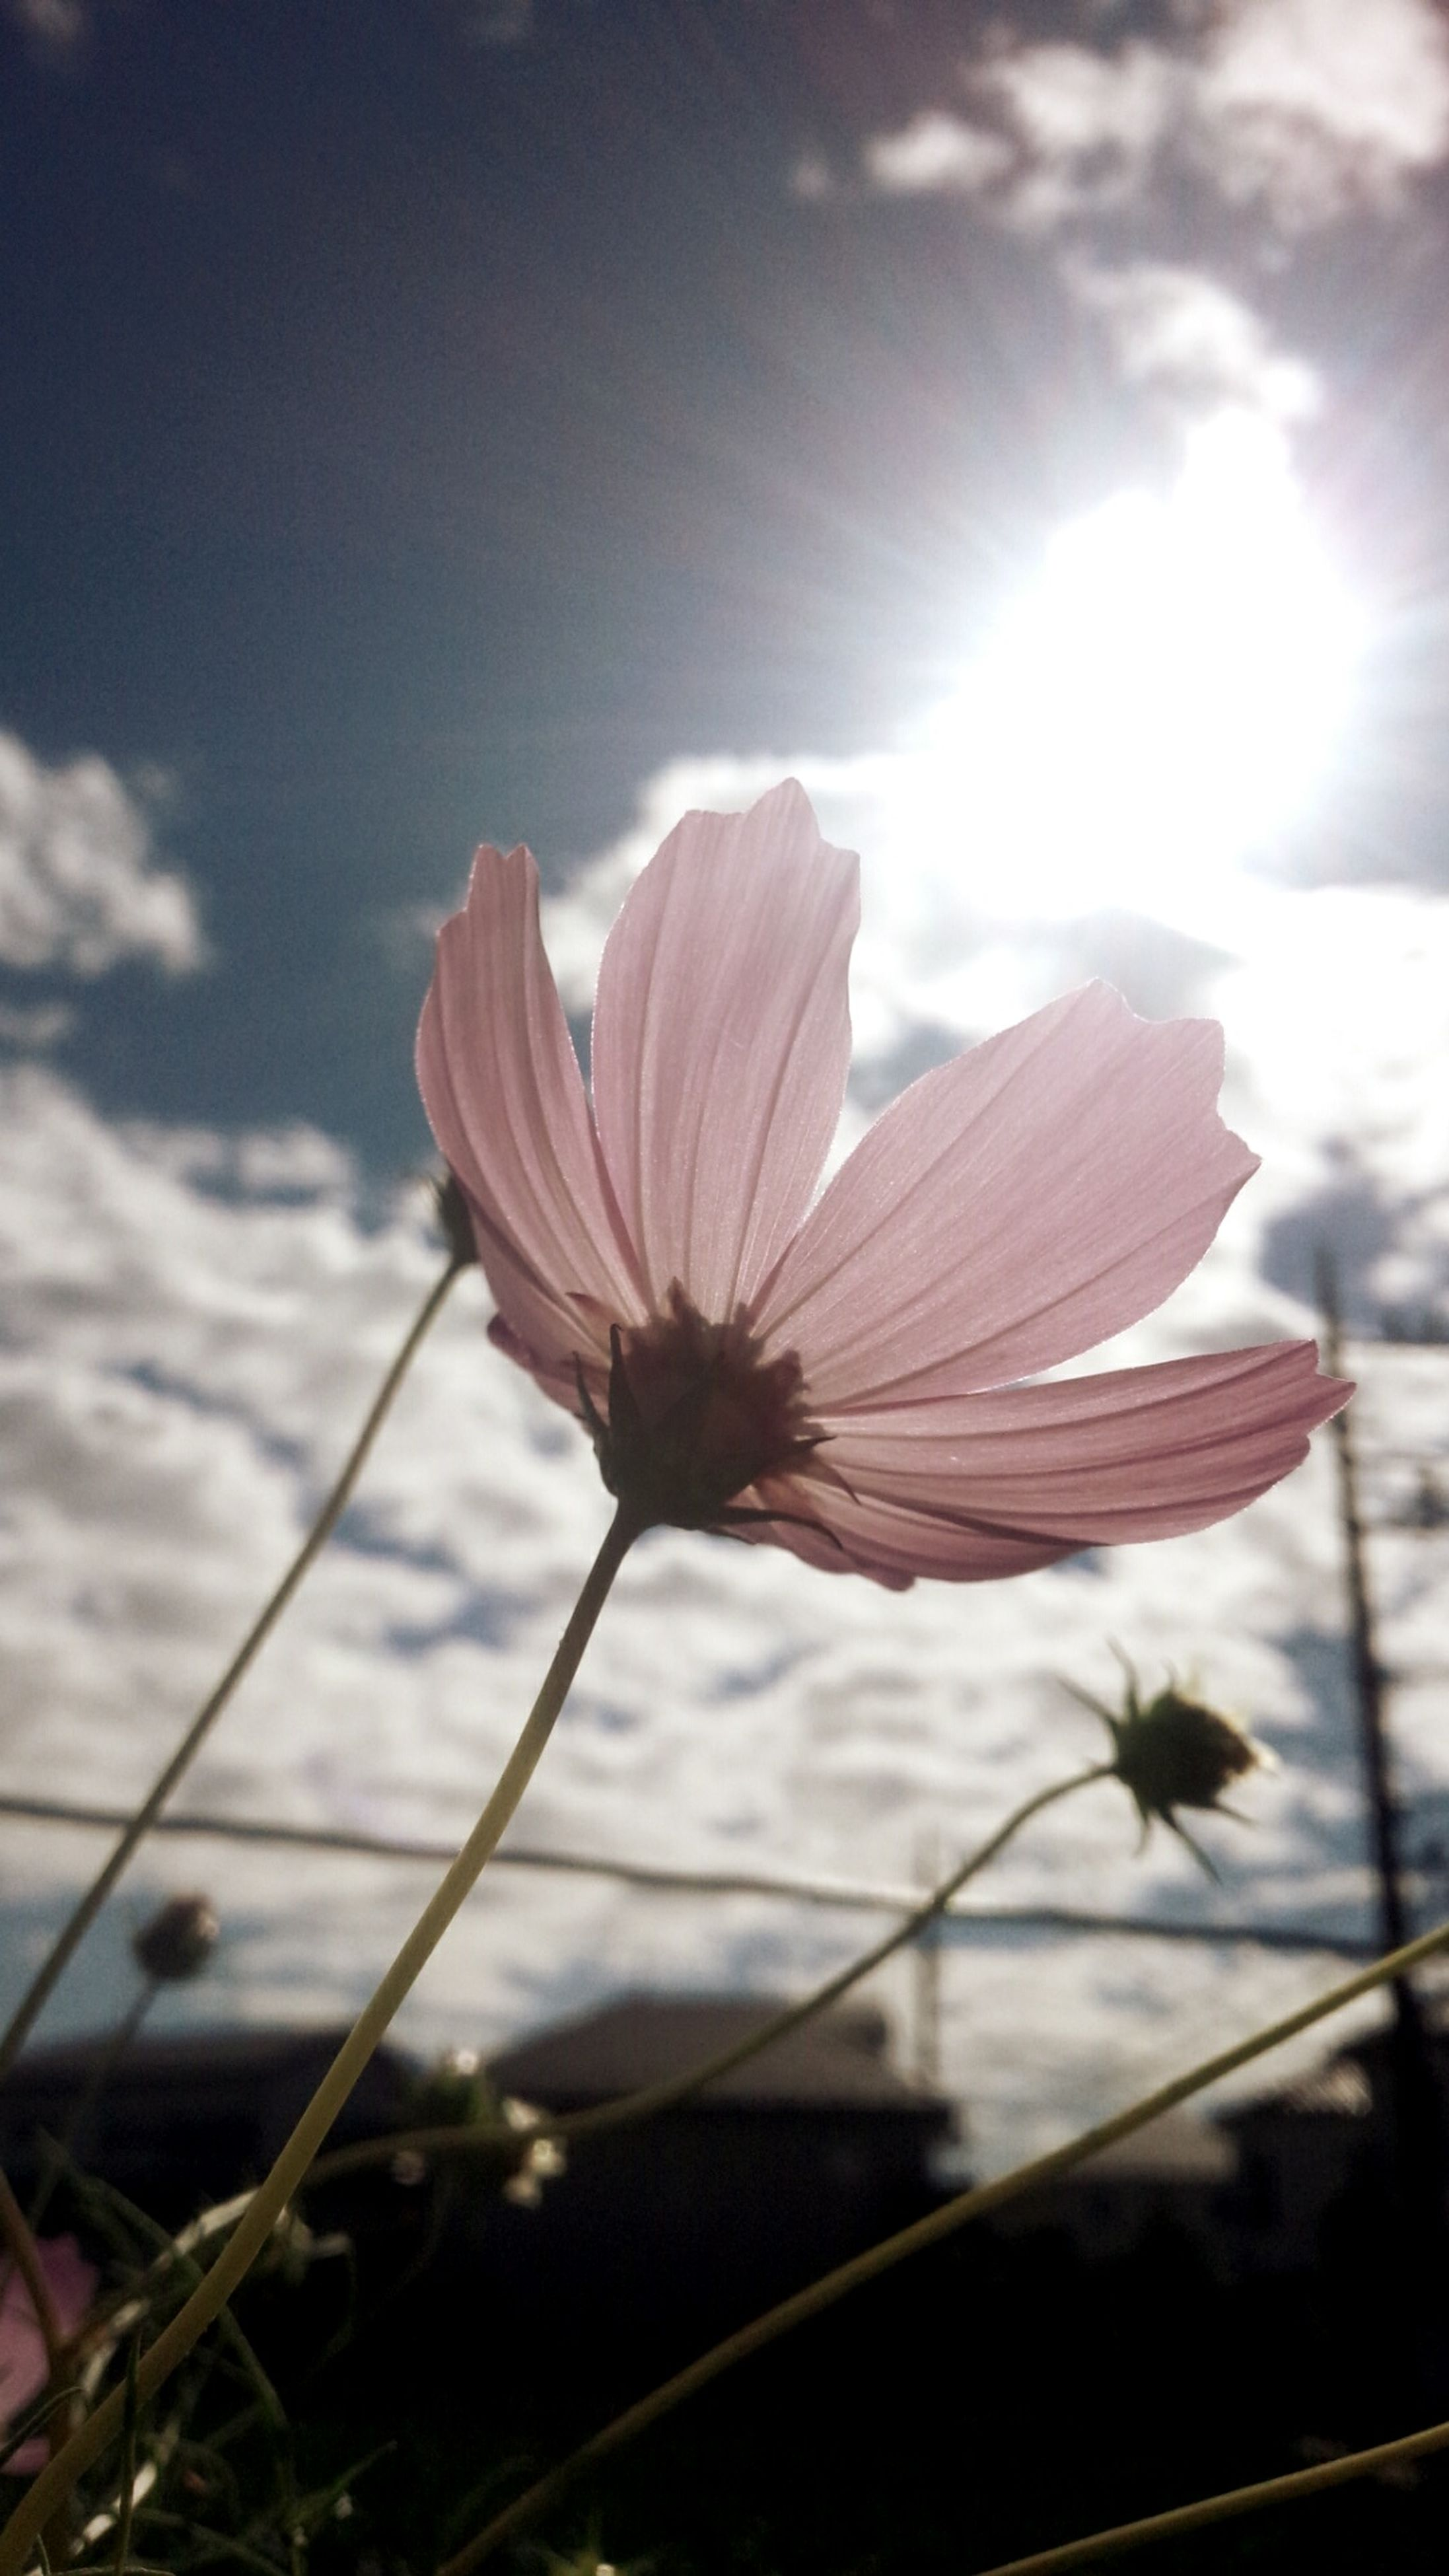 sun, fragility, flower, sky, focus on foreground, close-up, sunlight, beauty in nature, stem, nature, sunbeam, growth, petal, plant, freshness, lens flare, flower head, sunset, no people, outdoors